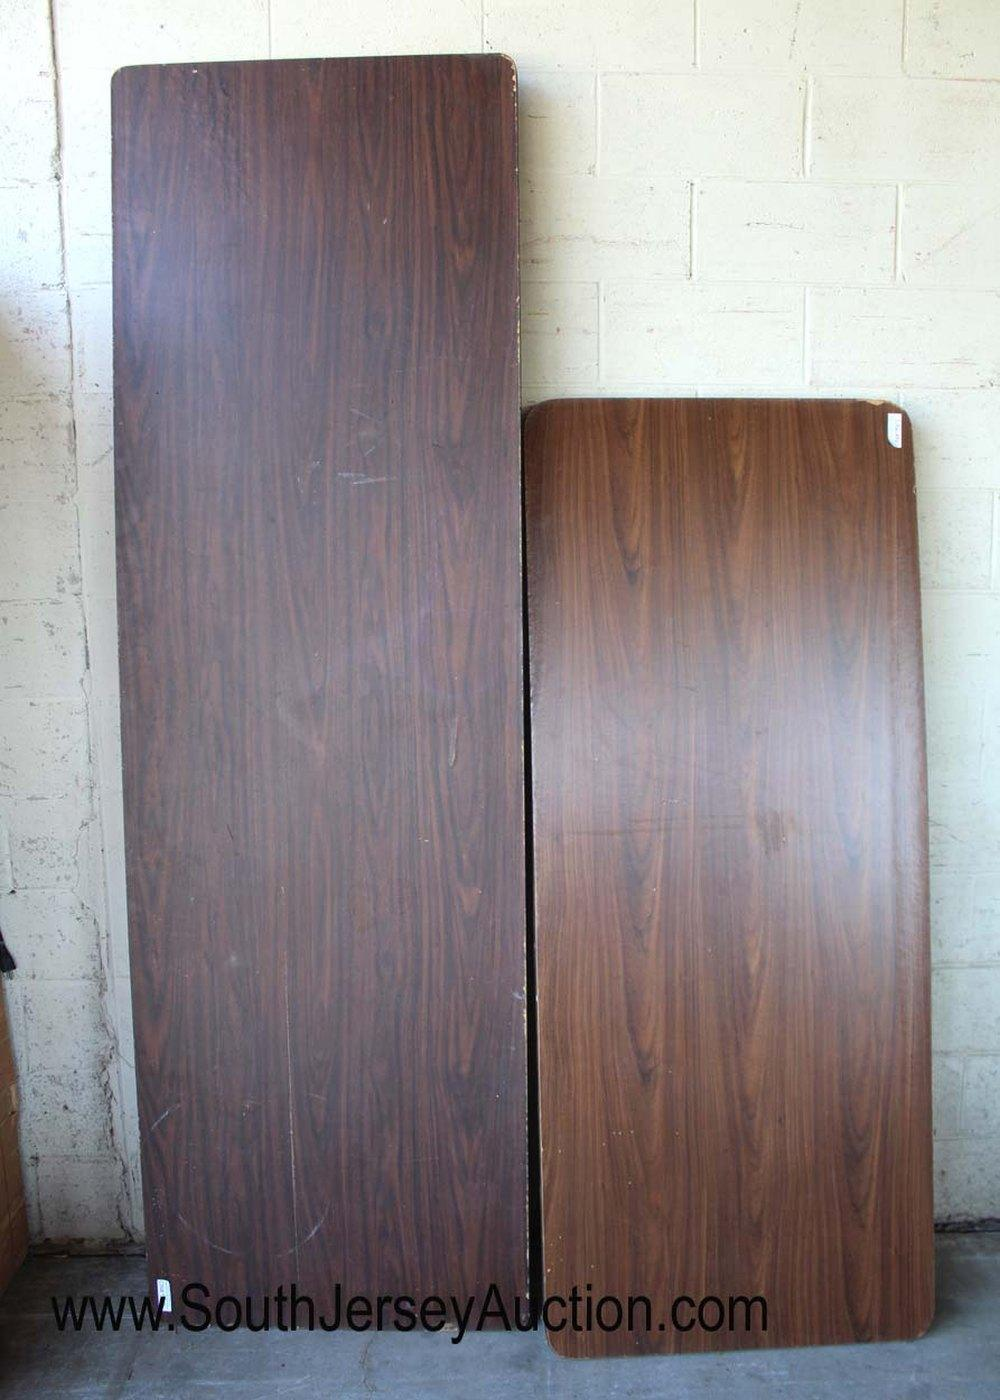 Group of 2 Folding Tables with Formica Tops (1)8 Foot and (1)6 Foot